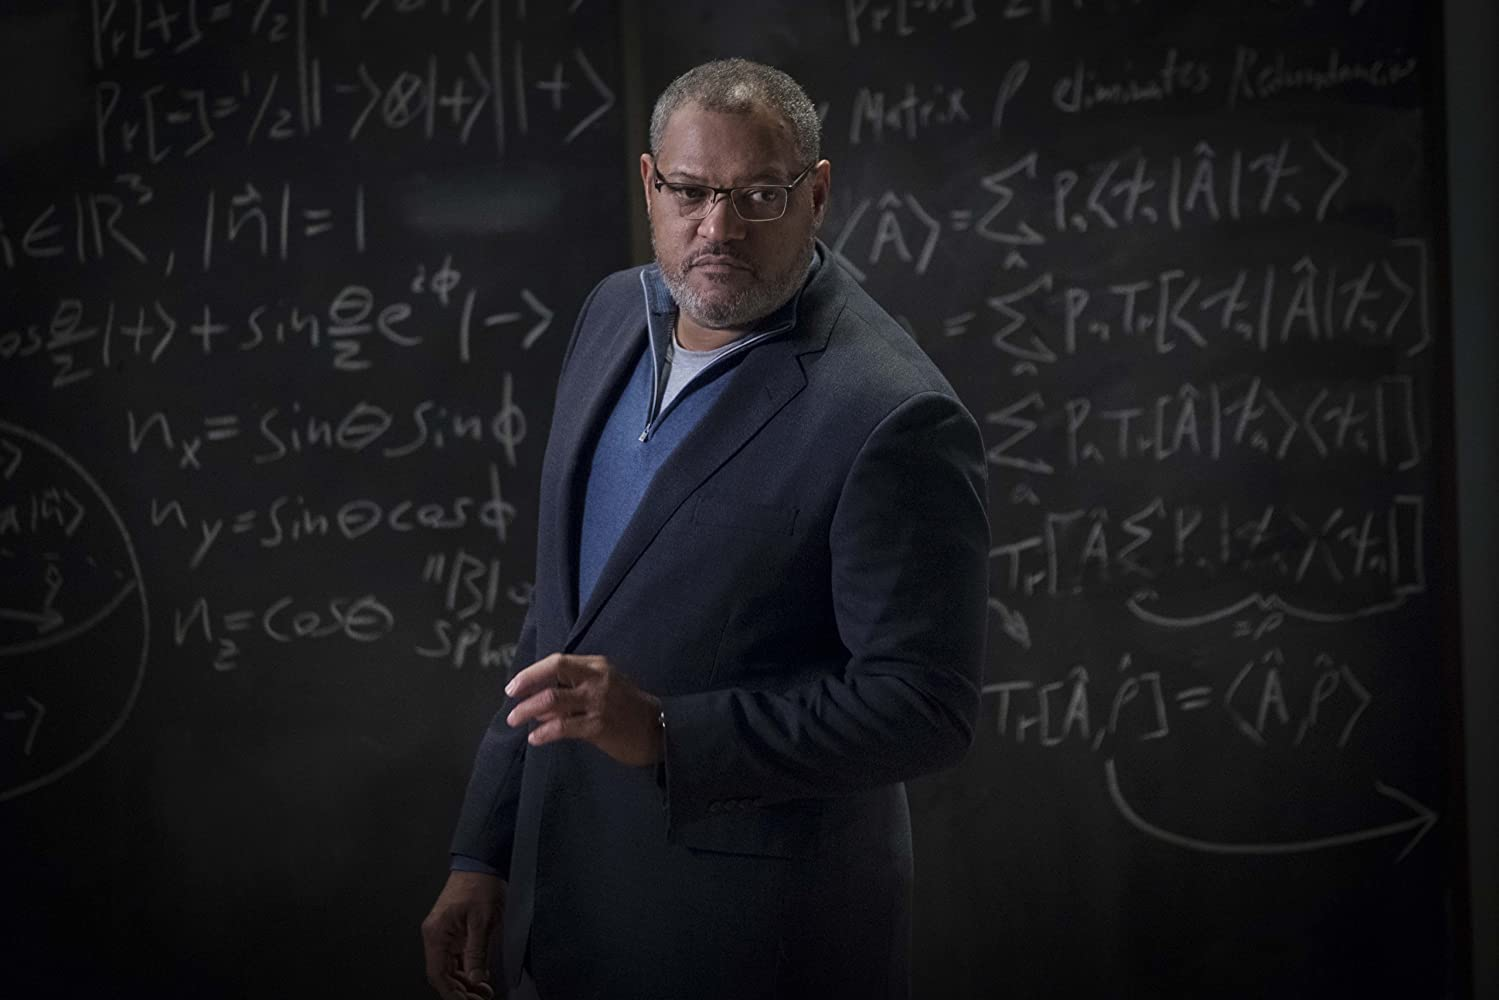 Laurence Fishburne in Ant-Man and the Wasp (2018)